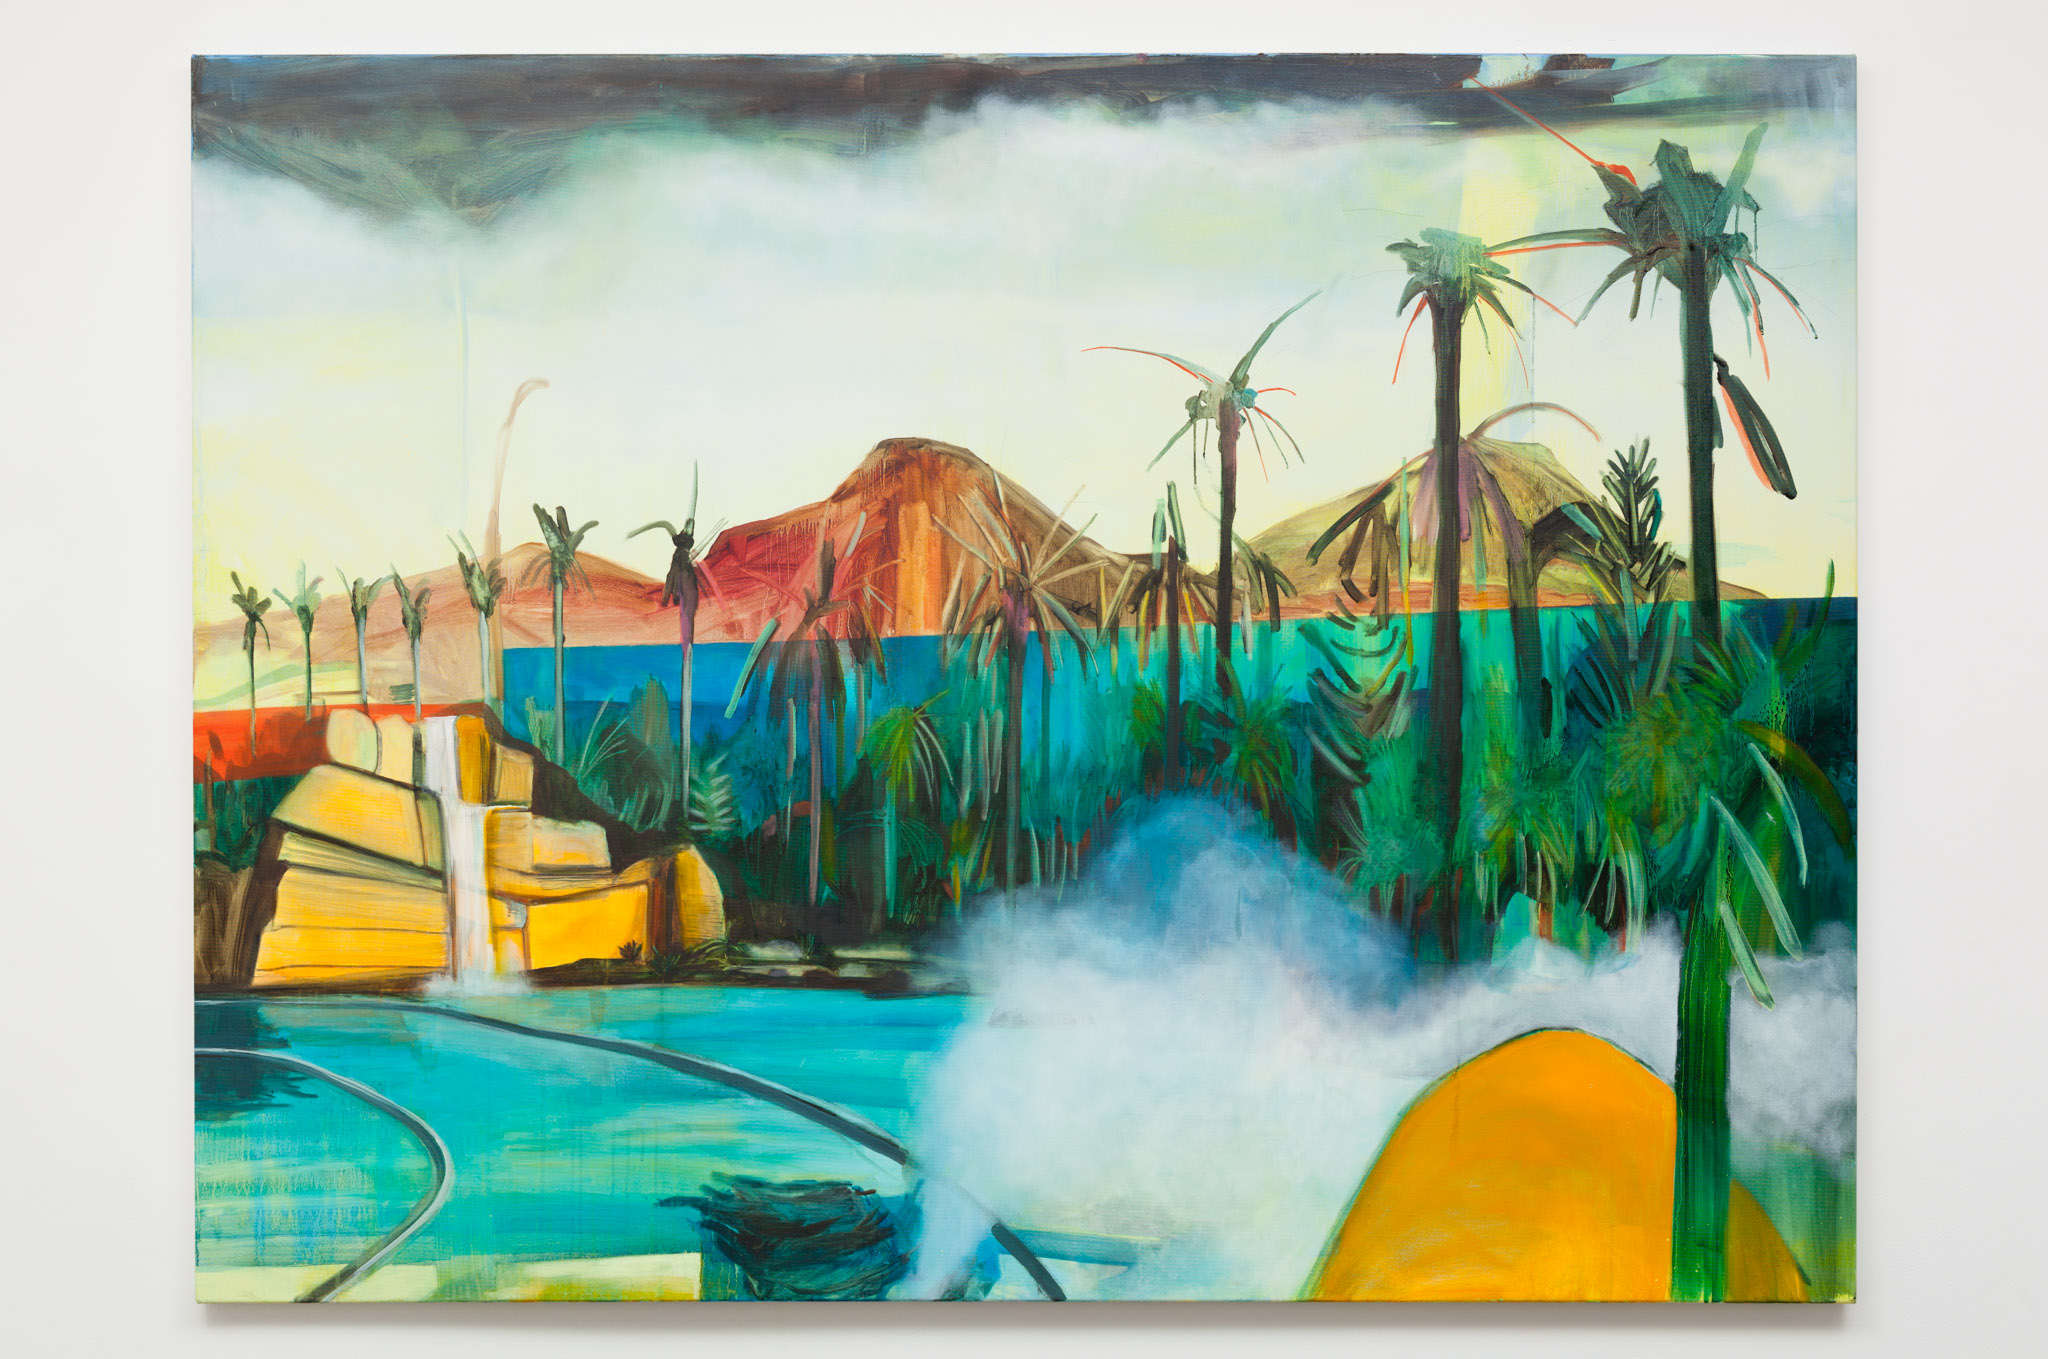 Artificial spring and palms louise thomas 2013 lr.jpg